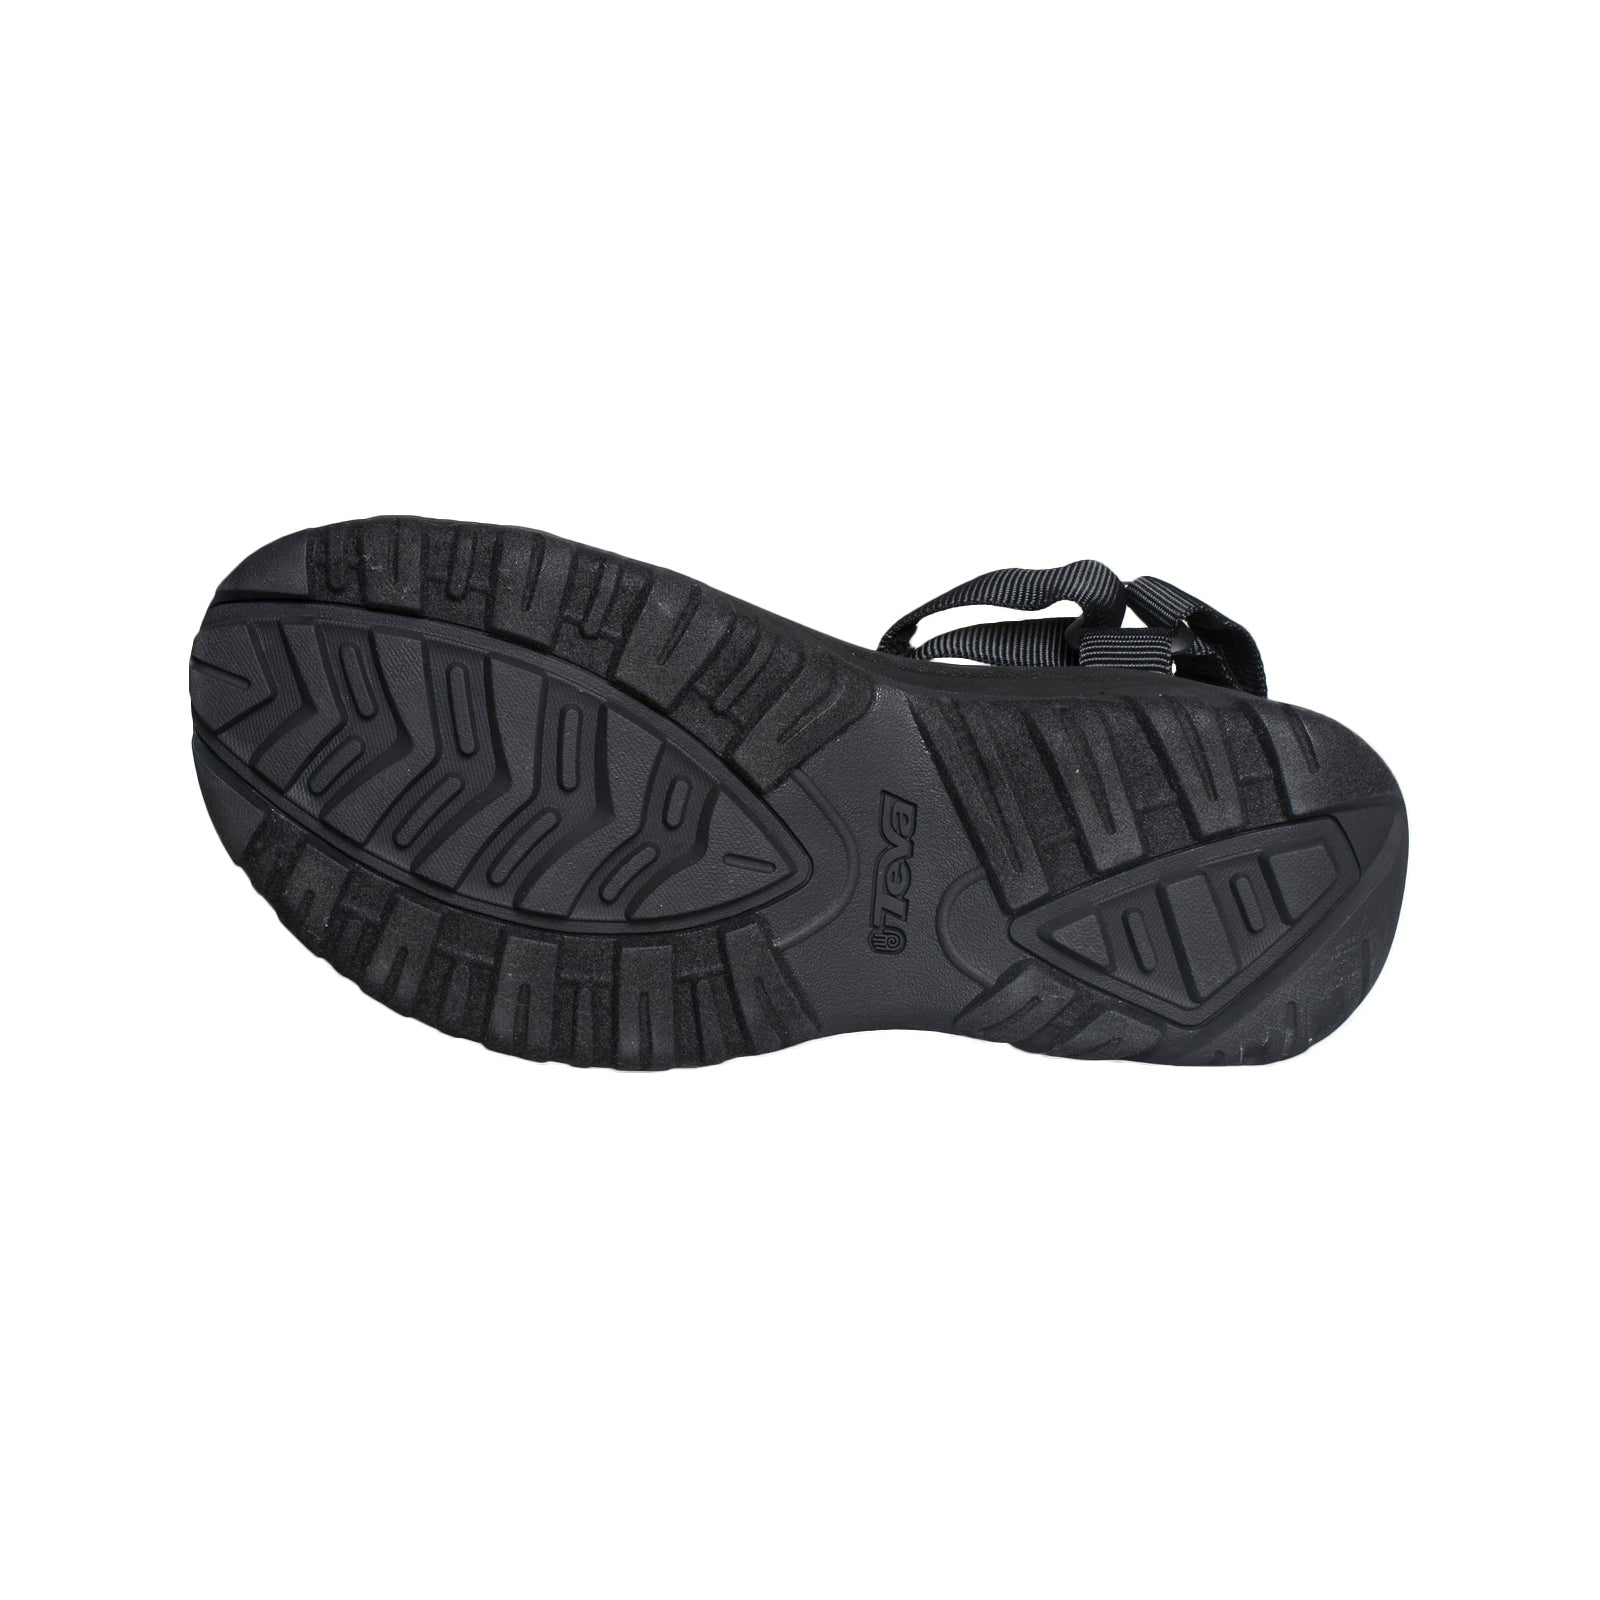 5f2389048 Teva Hurricane 4 Black Sandals - Women s - MyCozyBoots